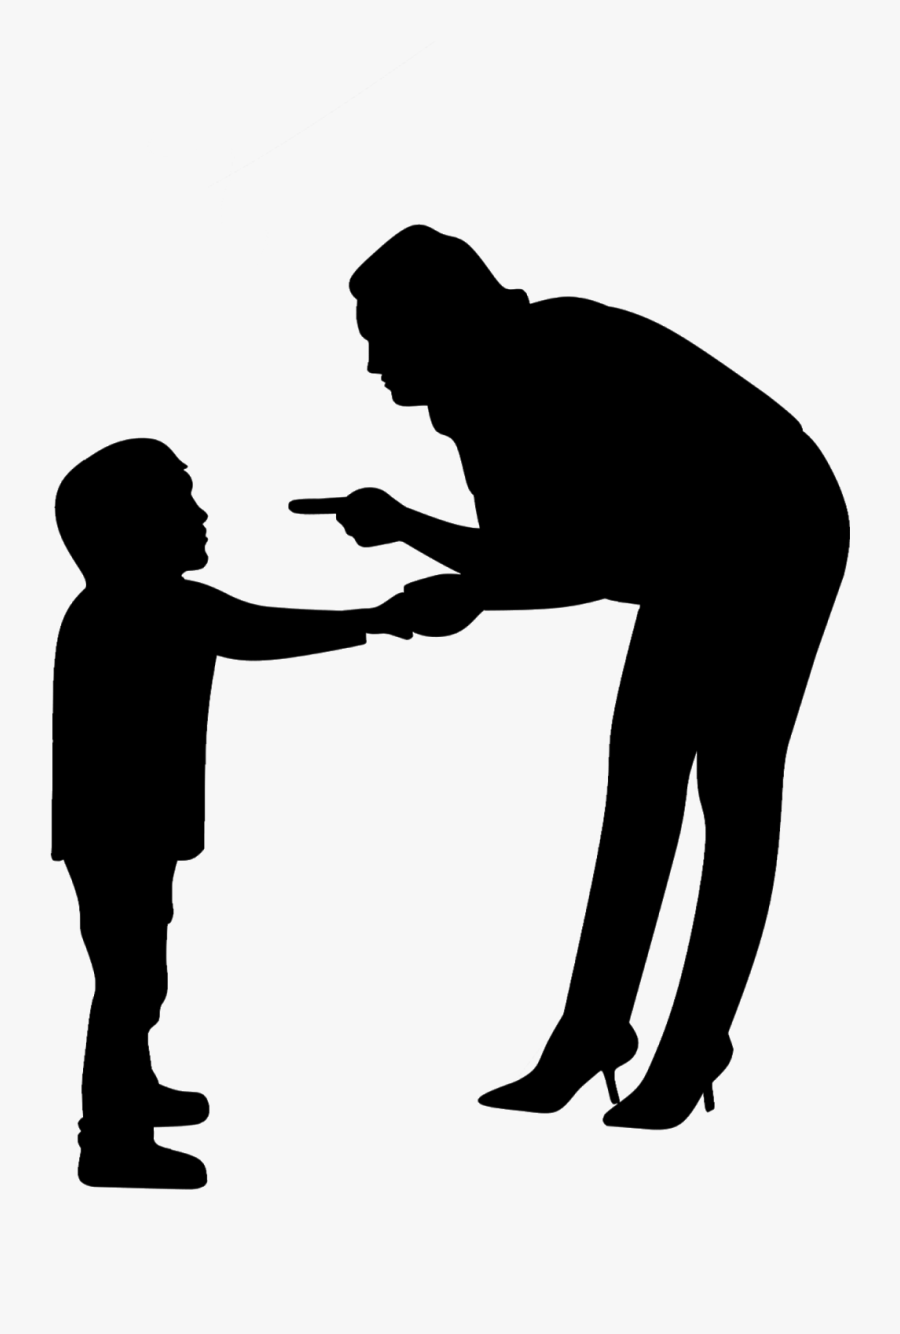 Discipline, Angry, Woman, Mother, Child, Parents, Silhouette, - Parents Angry Children Png, Transparent Clipart